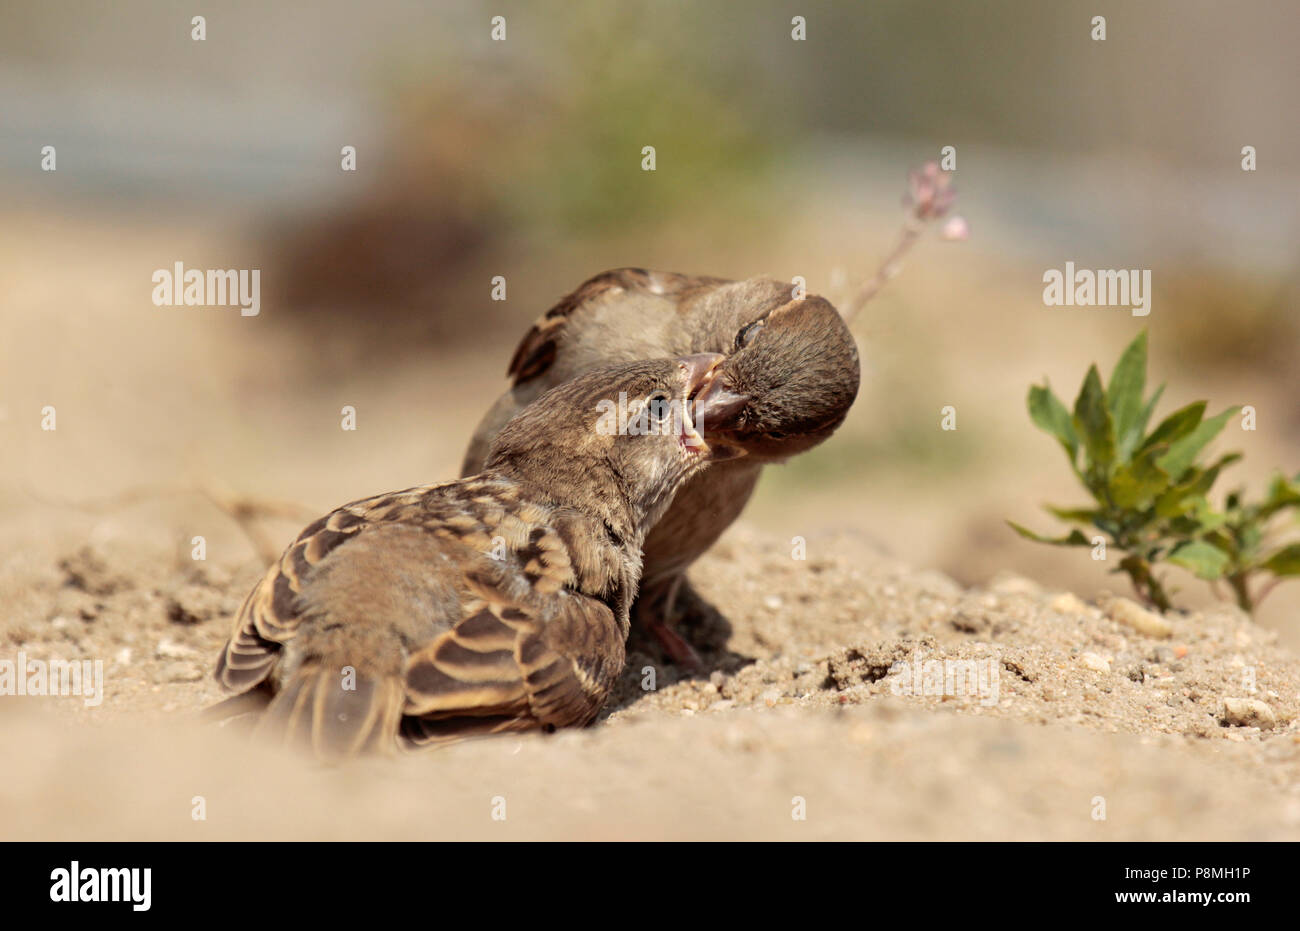 Adult house sparrow is feeding a juvenile. - Stock Image